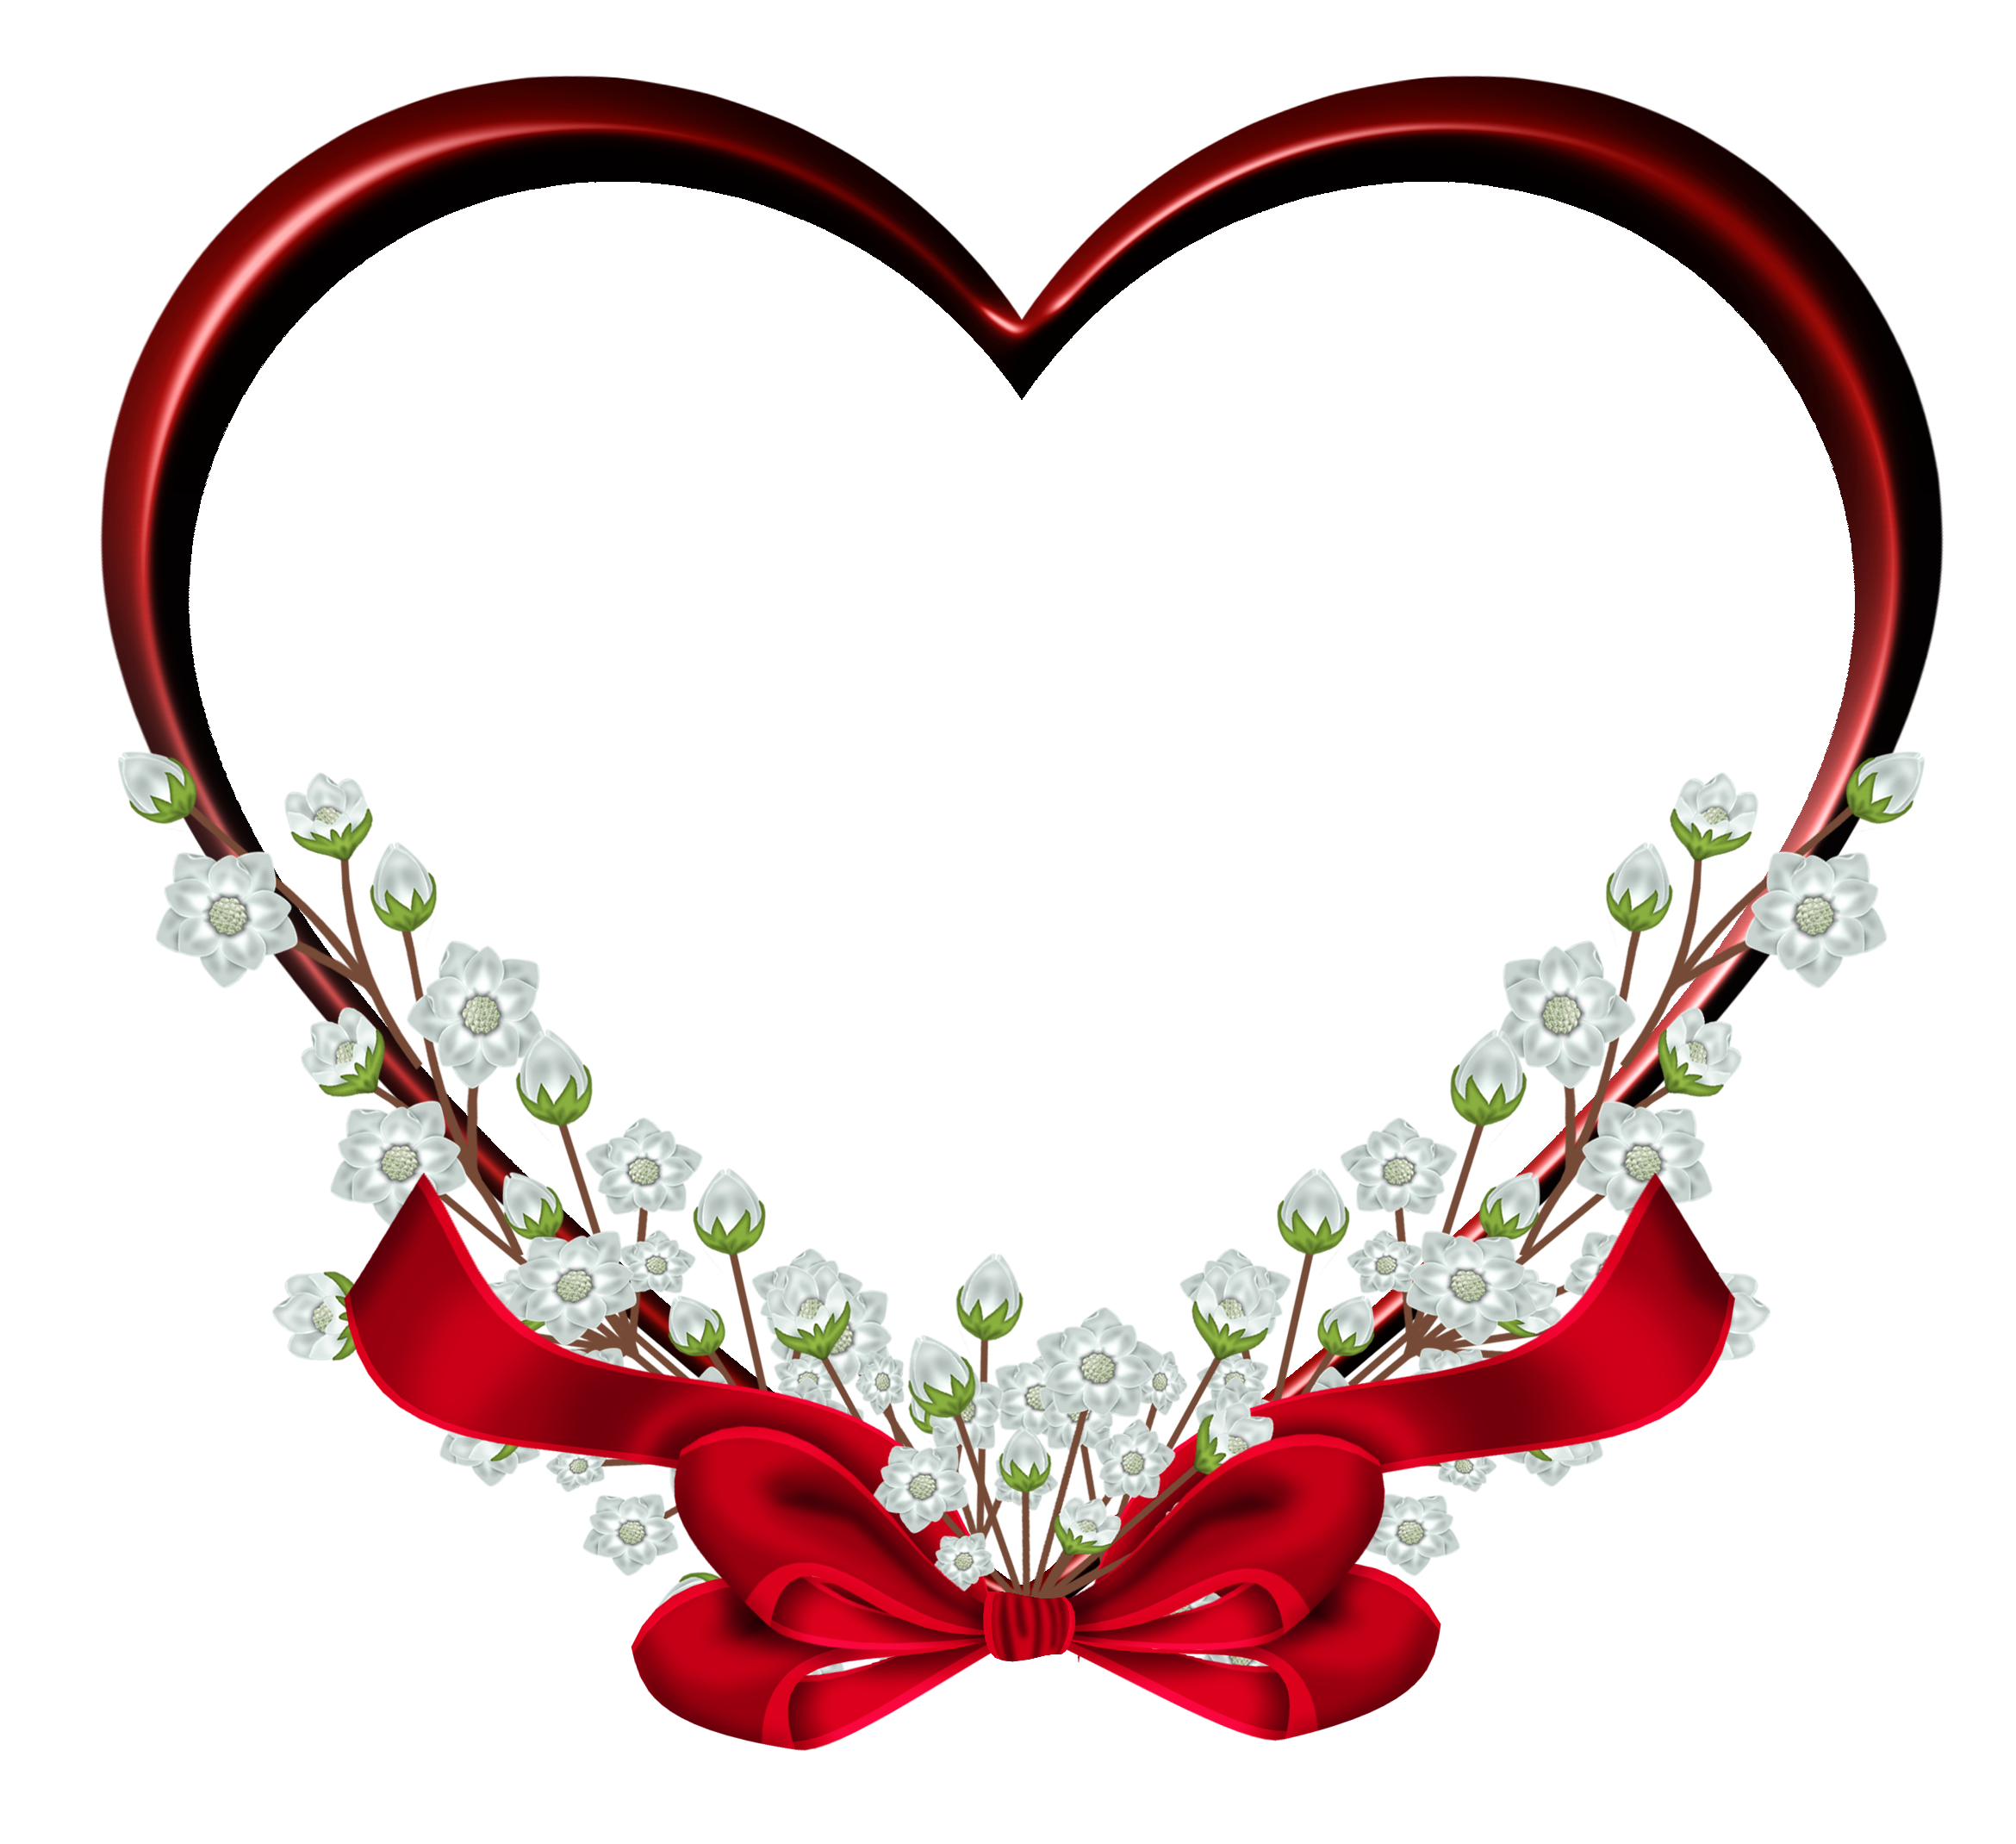 Framed Heart Wallpapers High Quality | Download Free